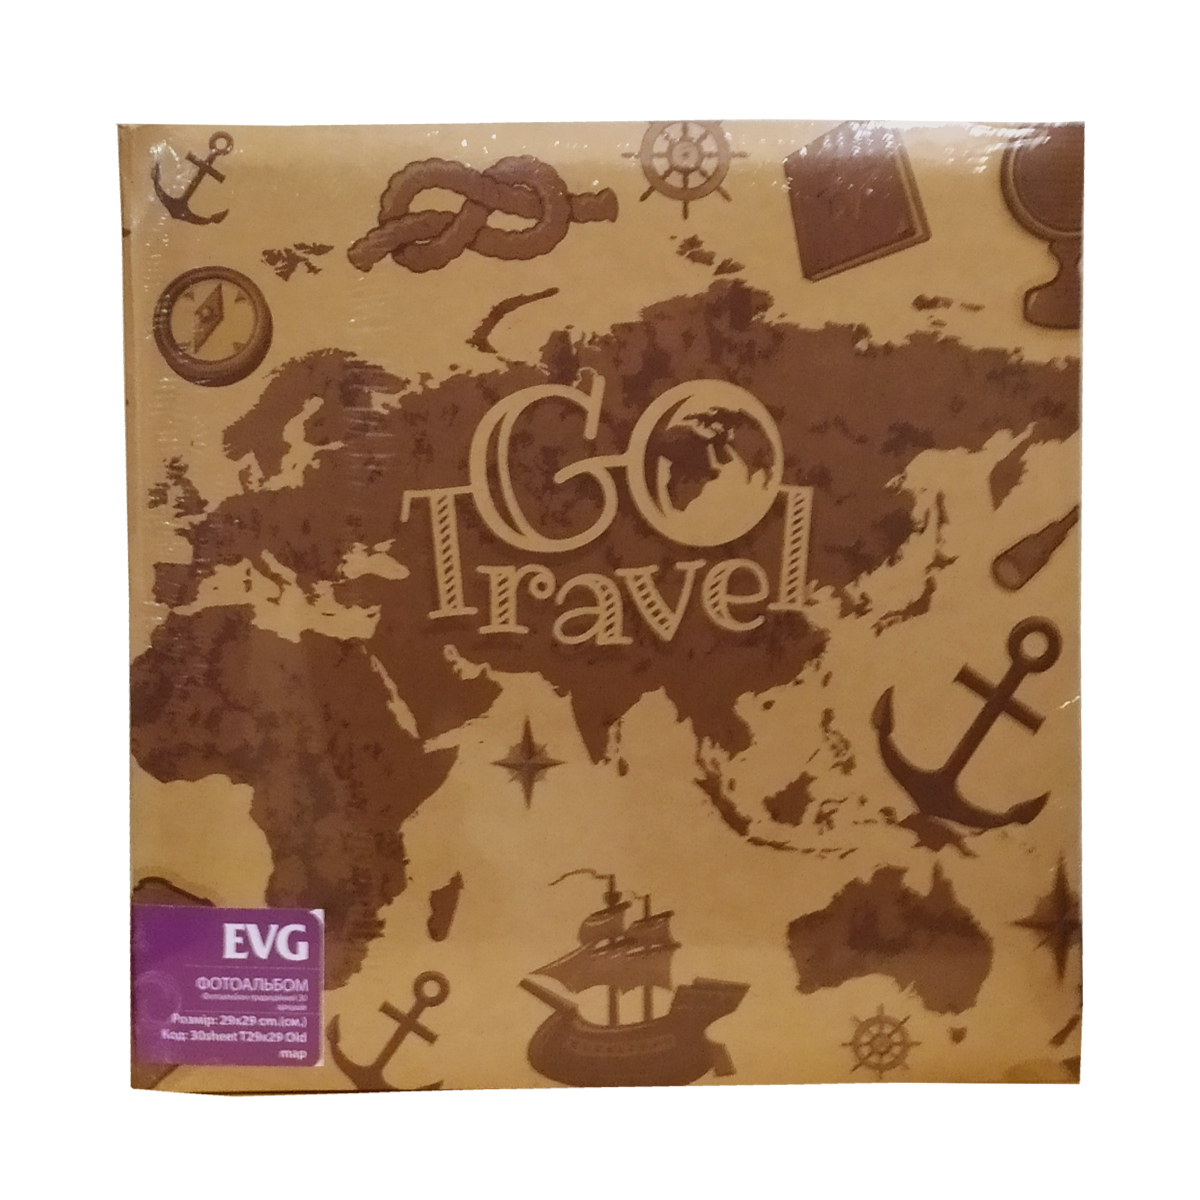 Фотоальбом EVG 30sheet T29x29 Old map